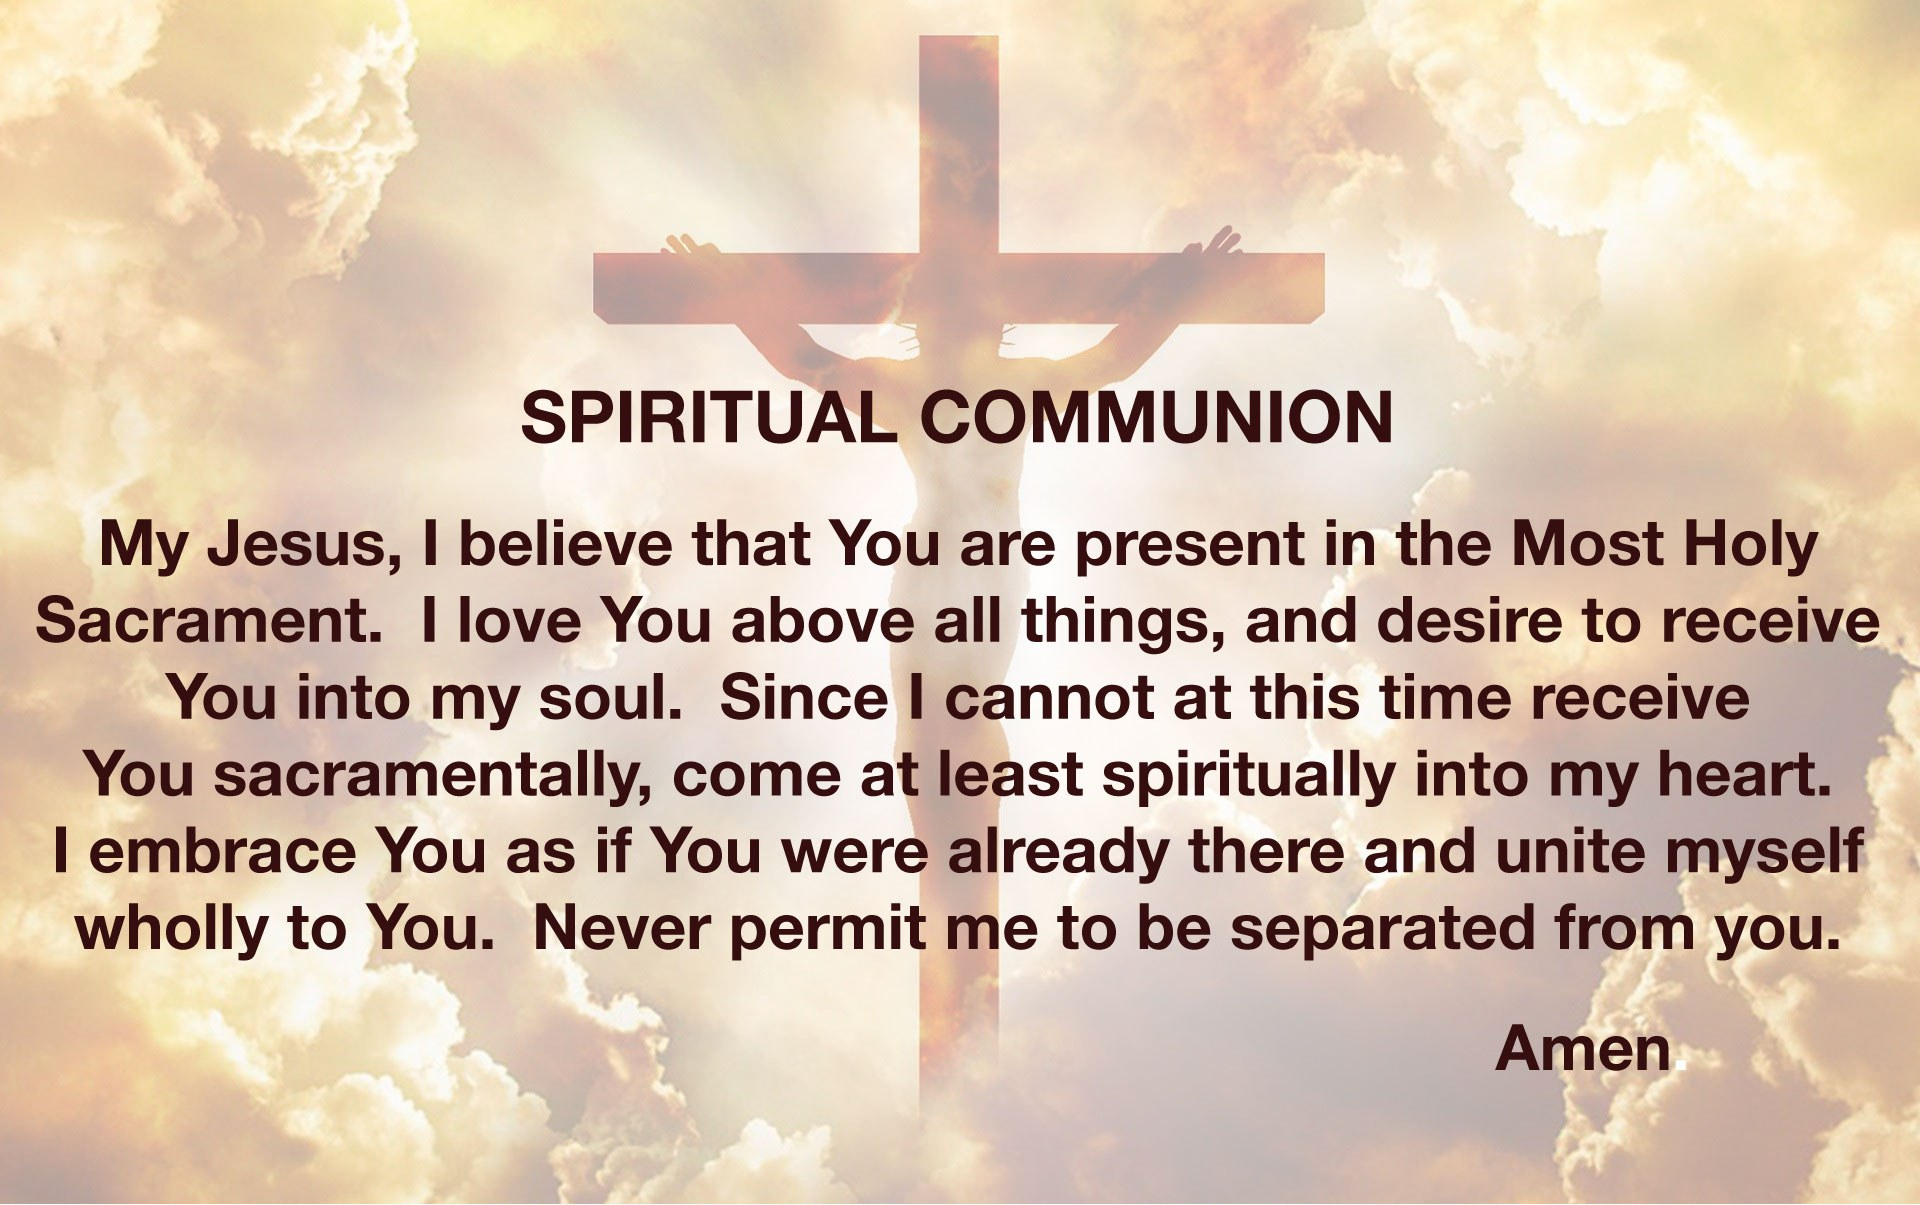 Spiritual Communion - My Jesus, I believe that You are present in the Most Holy Sacrament.  I love You above all things, and desire to receive You into my soul.  Since I cannot at this moment receive You sacramentally, come at least spiritually into my heart. I embrace You as if You were already there and unite myself wholly to You.  Never permit me to be separated from you. Amen.